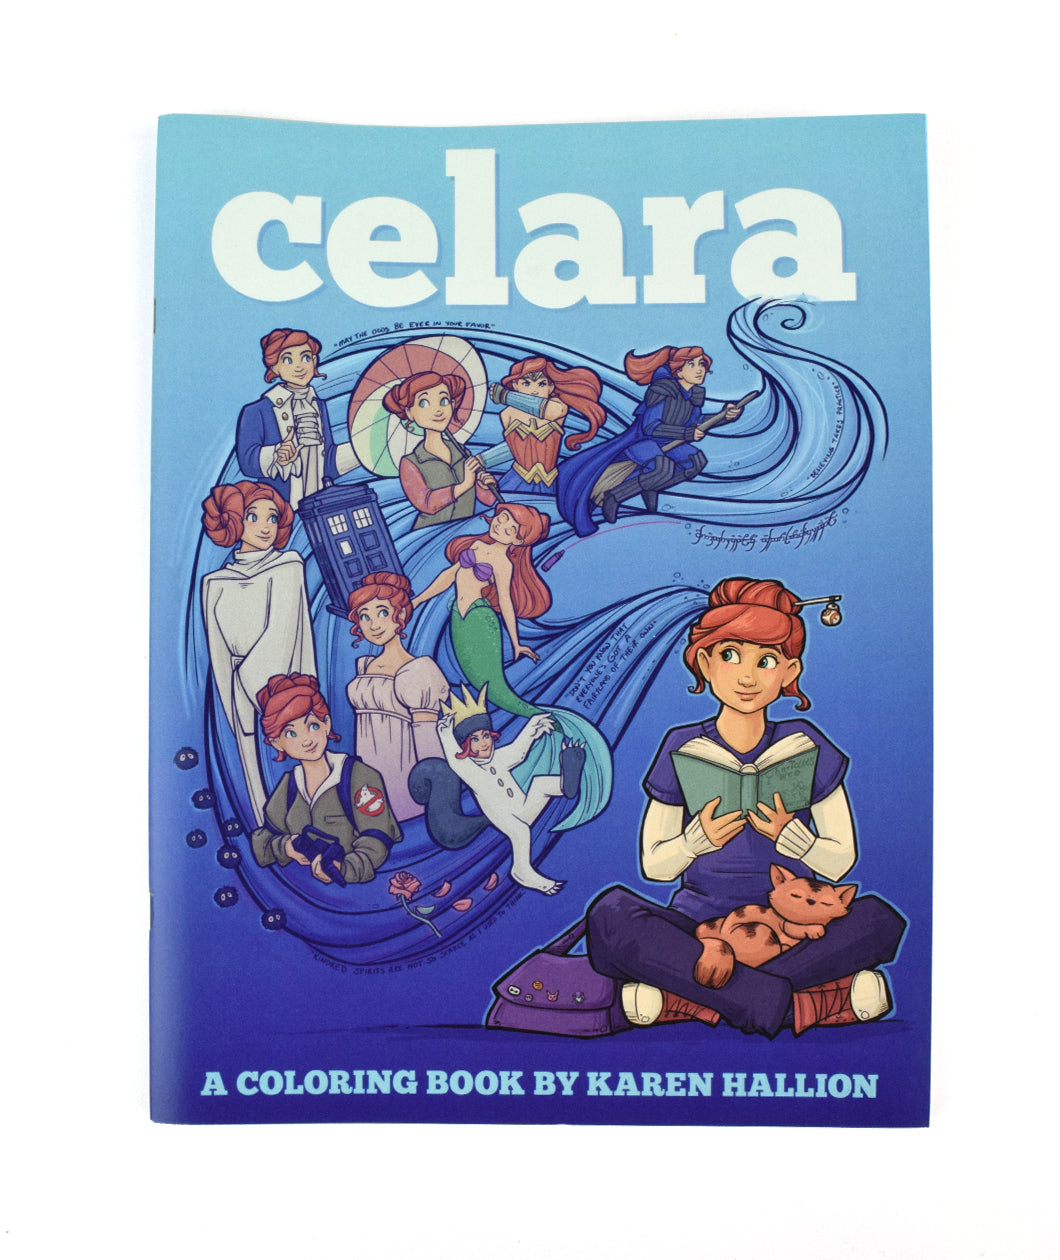 Celara Coloring Book for Adults